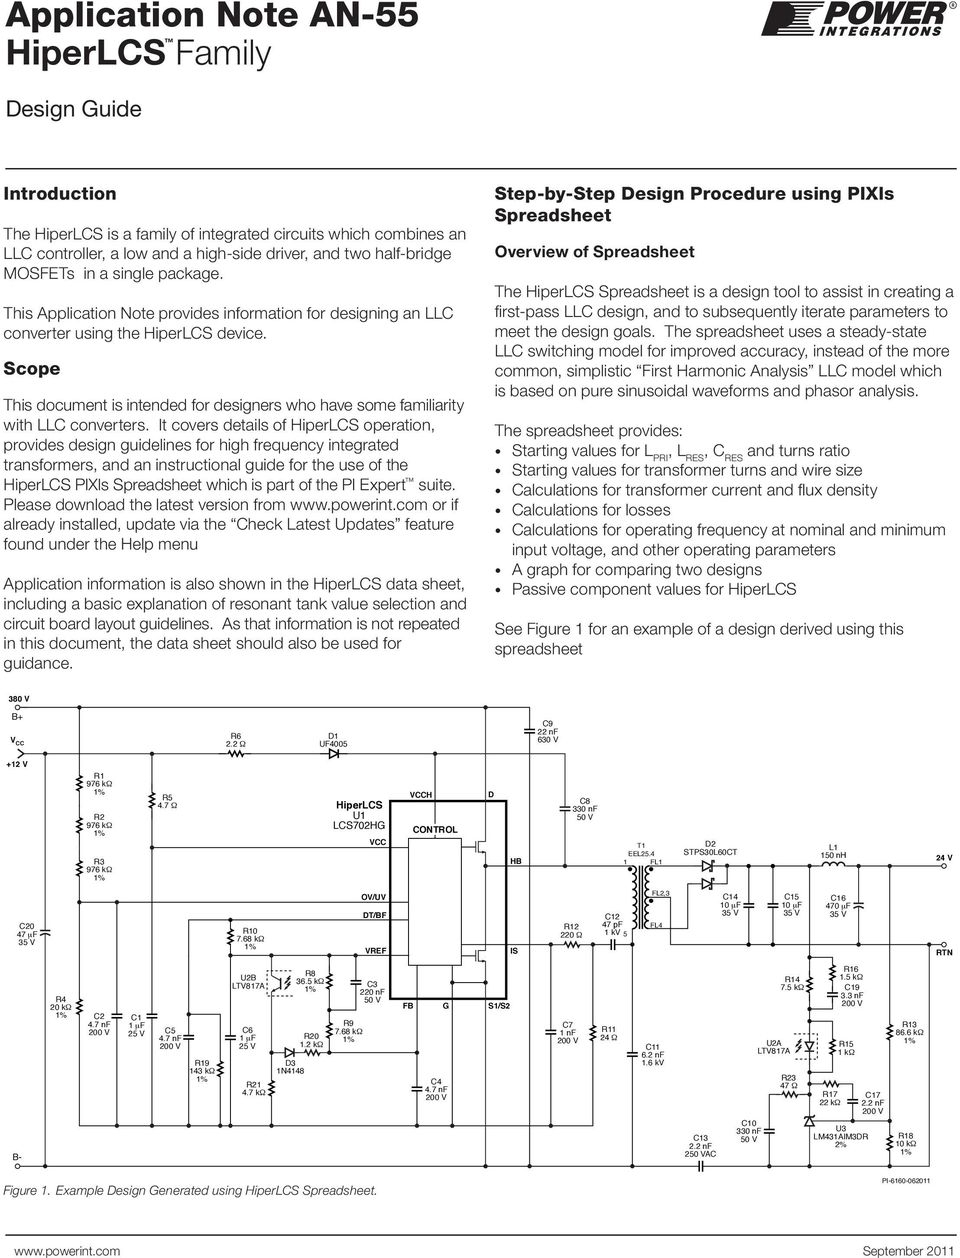 Transformer Design Spreadsheet With Application Note An55 Hiperlcs Family  Pdf